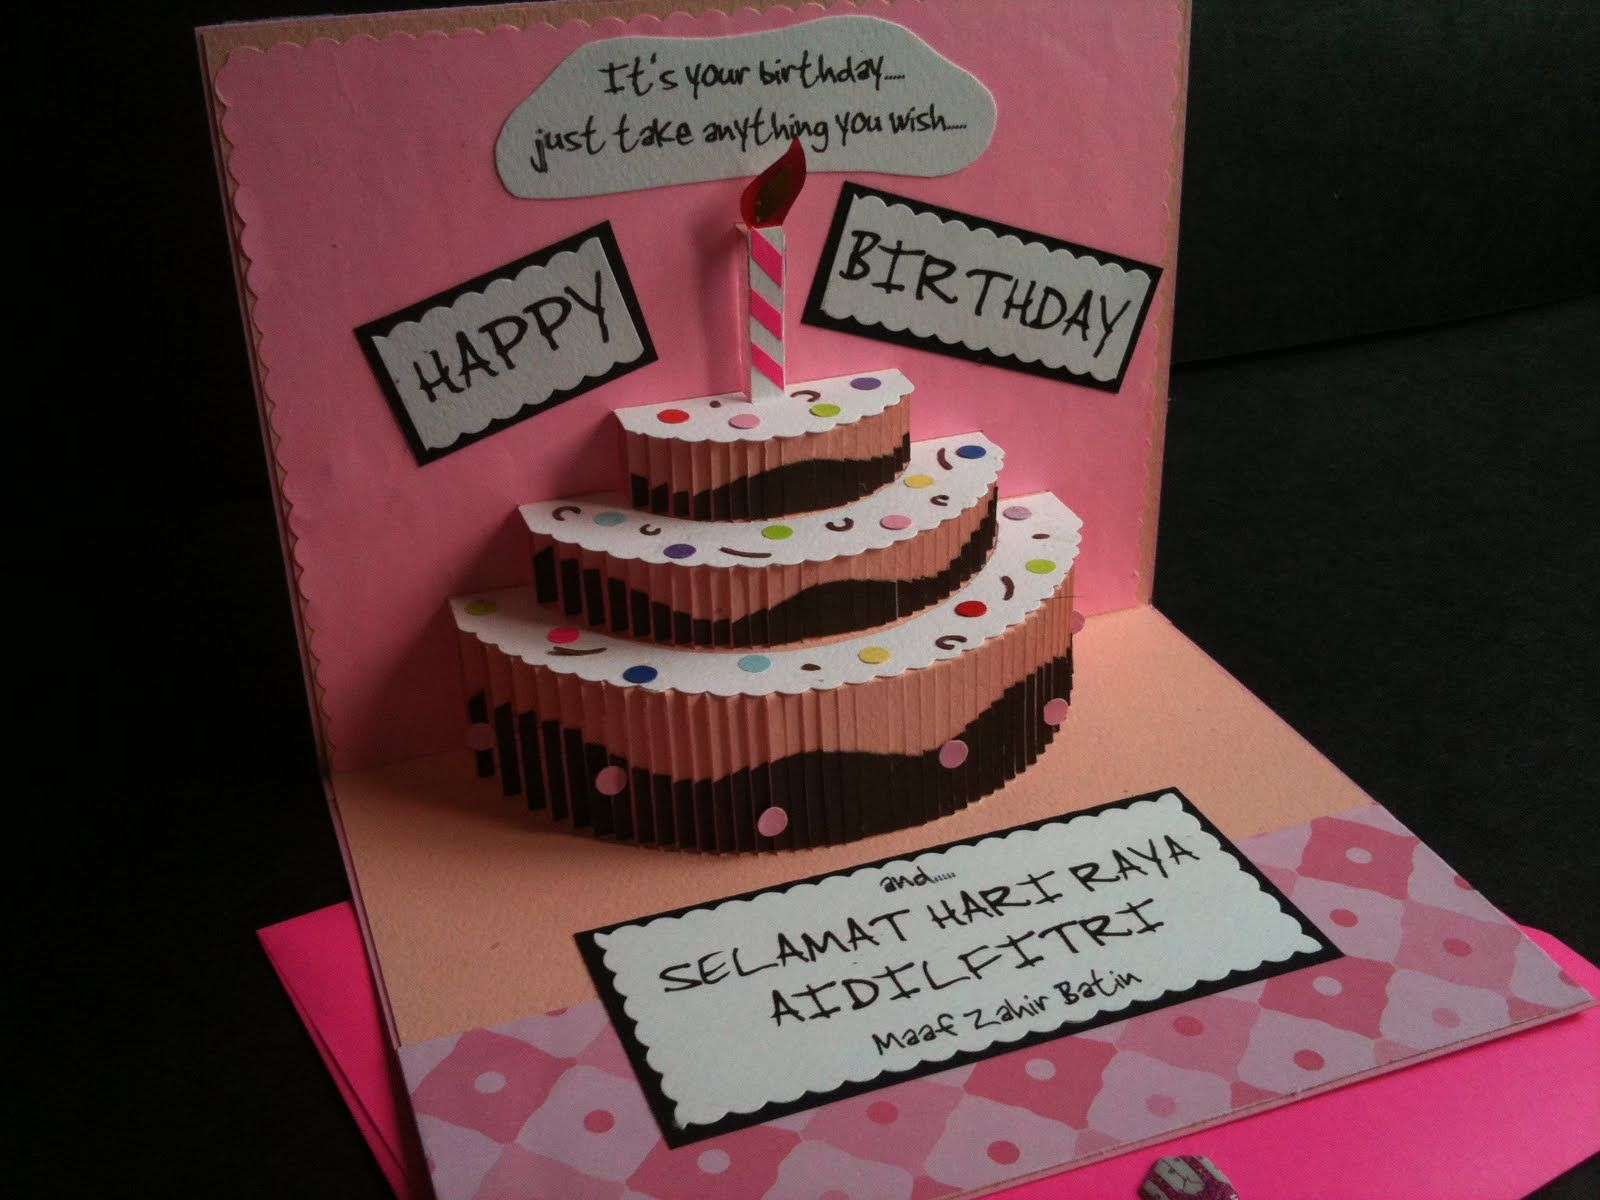 Home made birthday cards handmade greeting cardcrafts bestfriends home made birthday cards handmade greeting cardcrafts bestfriends made it bookmarktalkfo Image collections